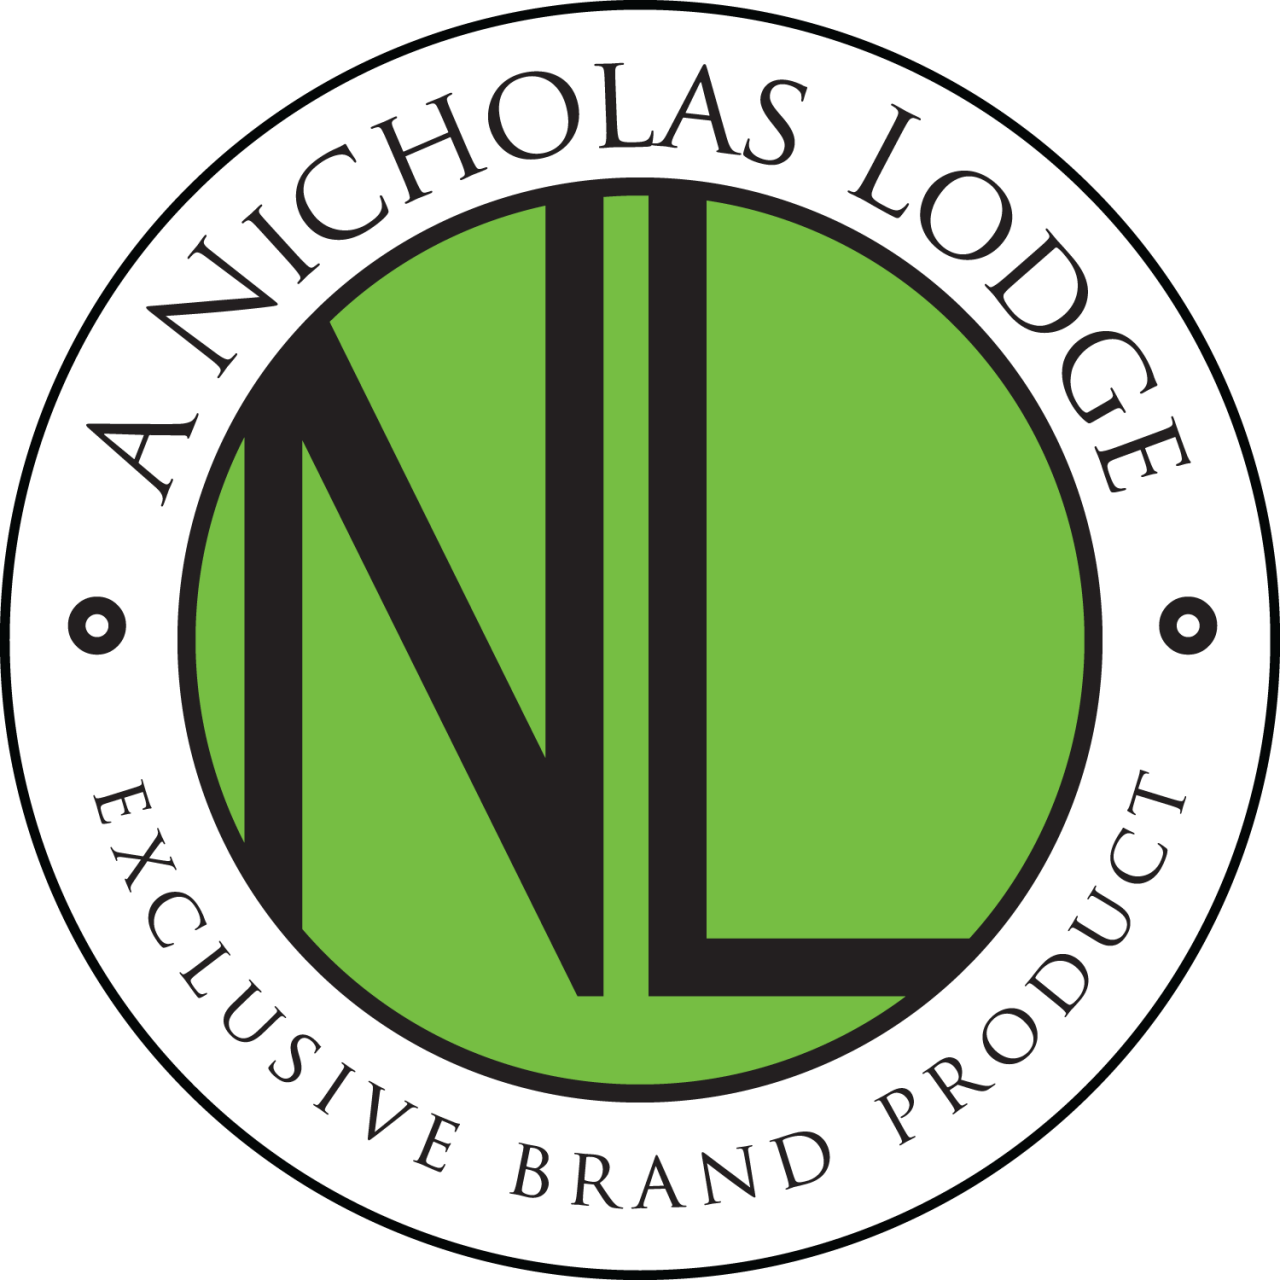 Nicholas-Lodge-Circle-Logo-Clear2